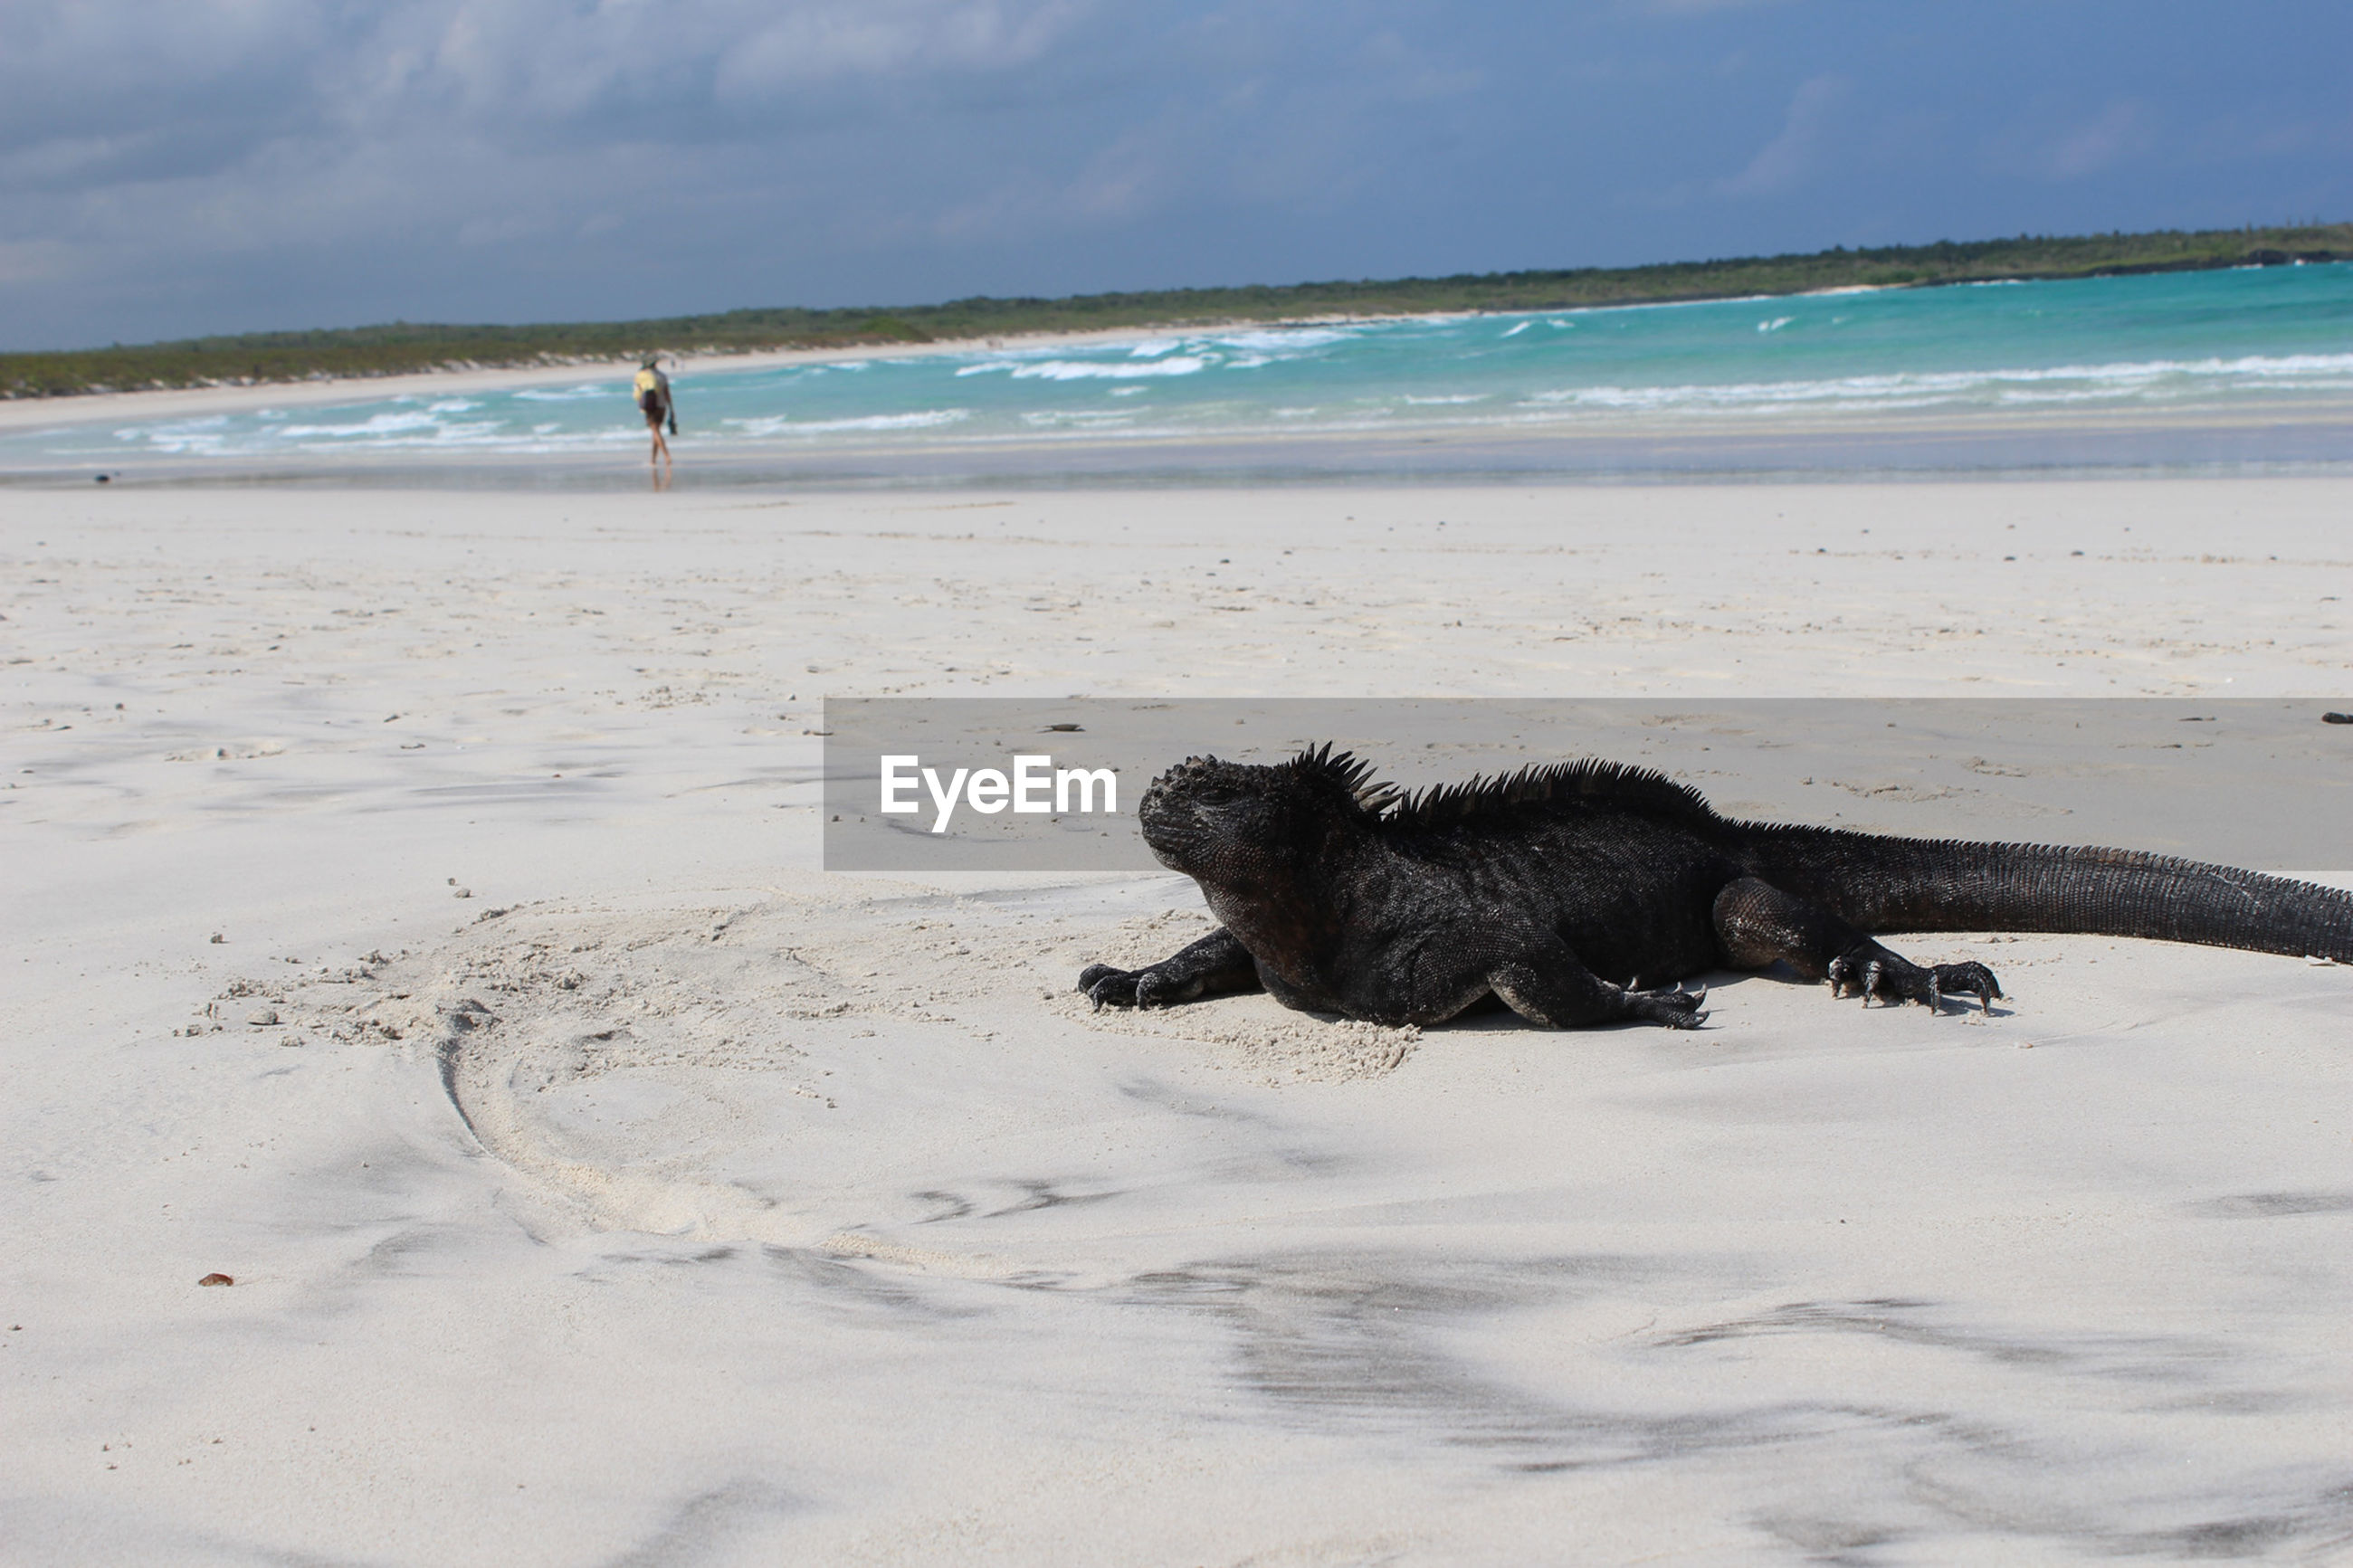 DOG PLAYING ON BEACH AGAINST SEA